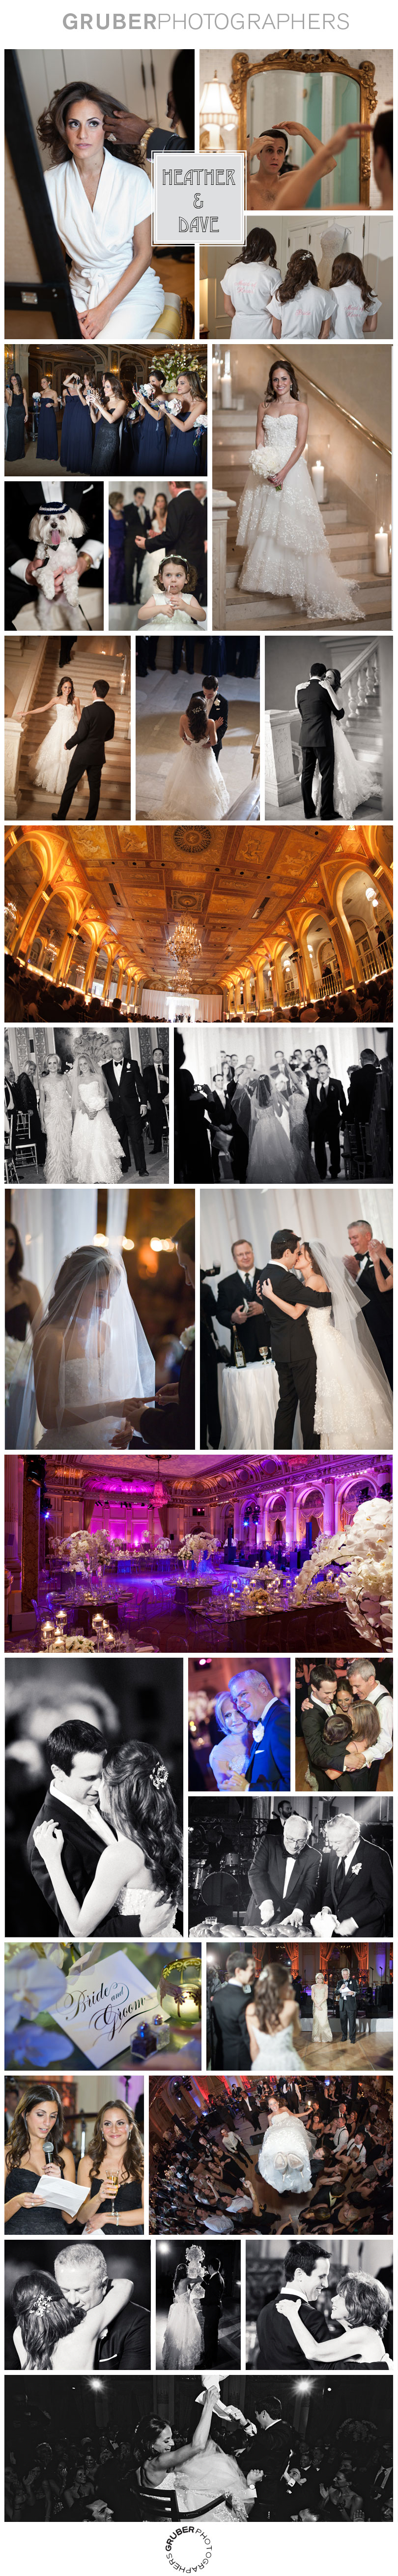 new york city wedding photography at the plaza